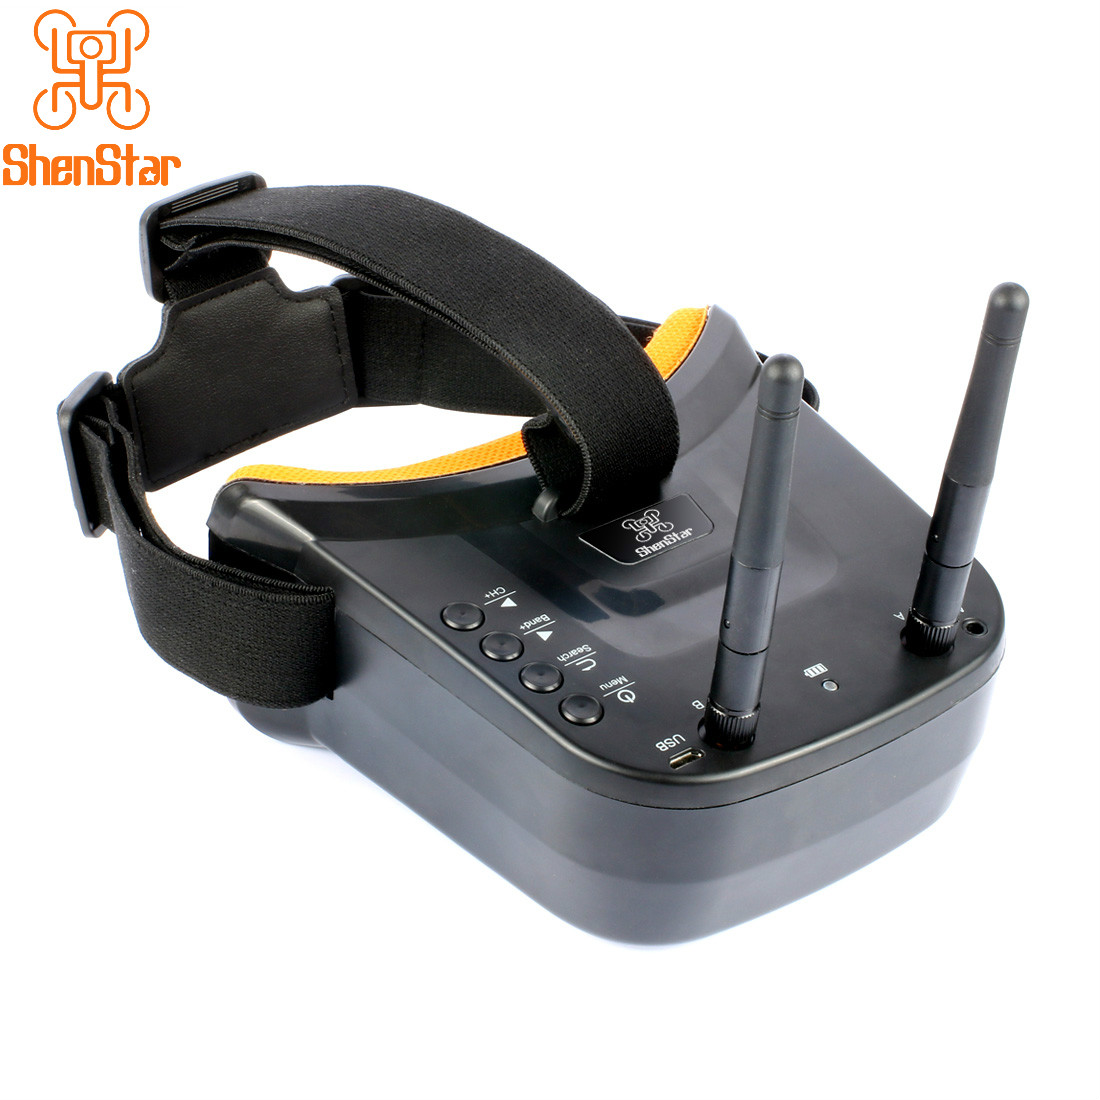 New Mini FPV Goggles 3 inch <font><b>480</b></font> x <font><b>320</b></font> Display Double Antenna 5.8G 40CH Built-in 3.7V 1200mAh Battery for Racing Drone Models image